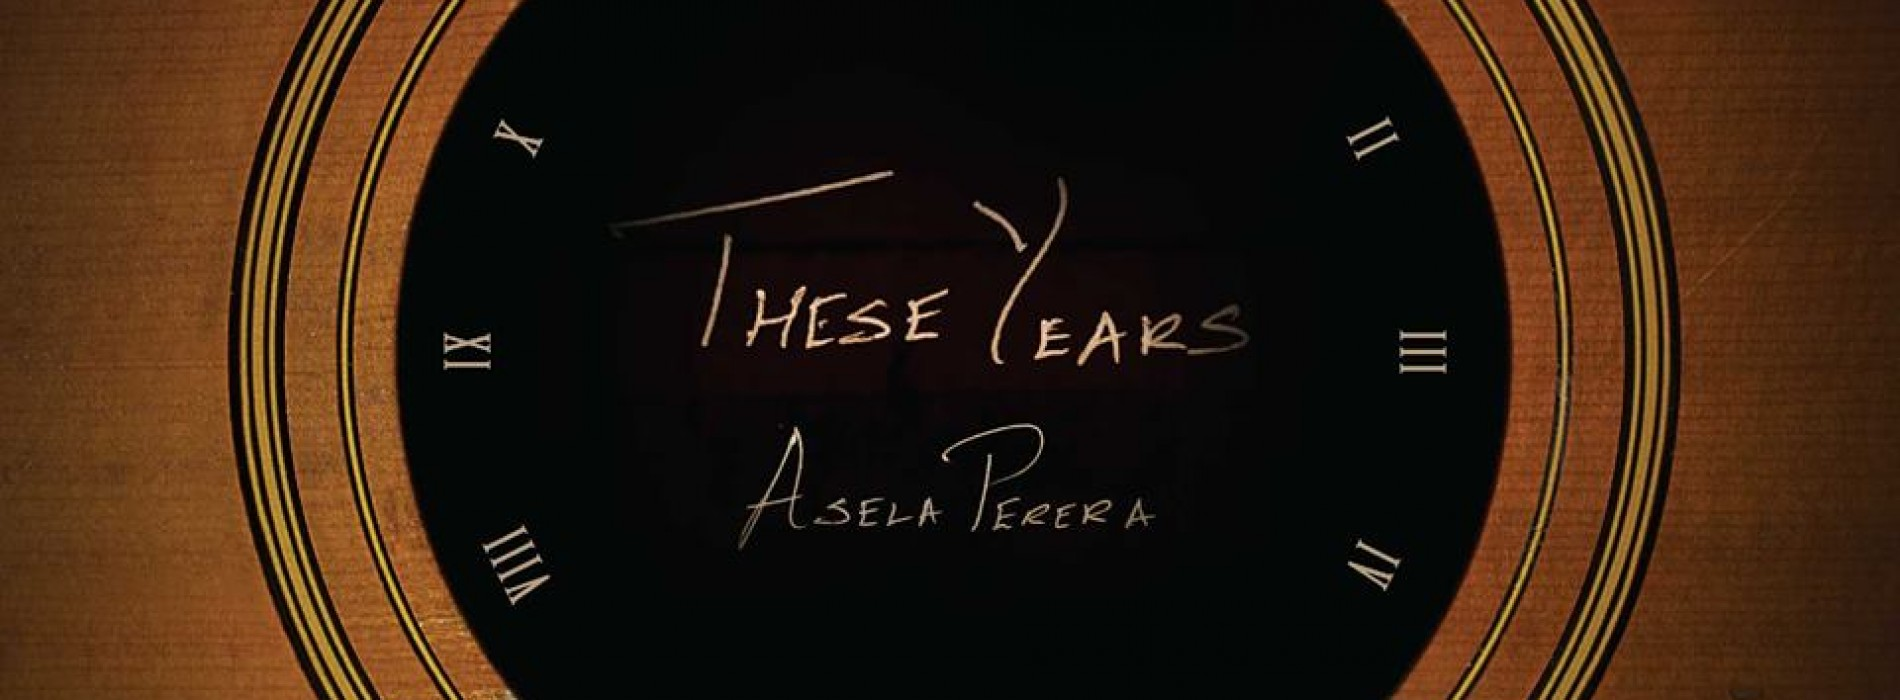 """Asela Perera – The Art of Getting by (Live @ """"These Years"""" Album Launch)"""